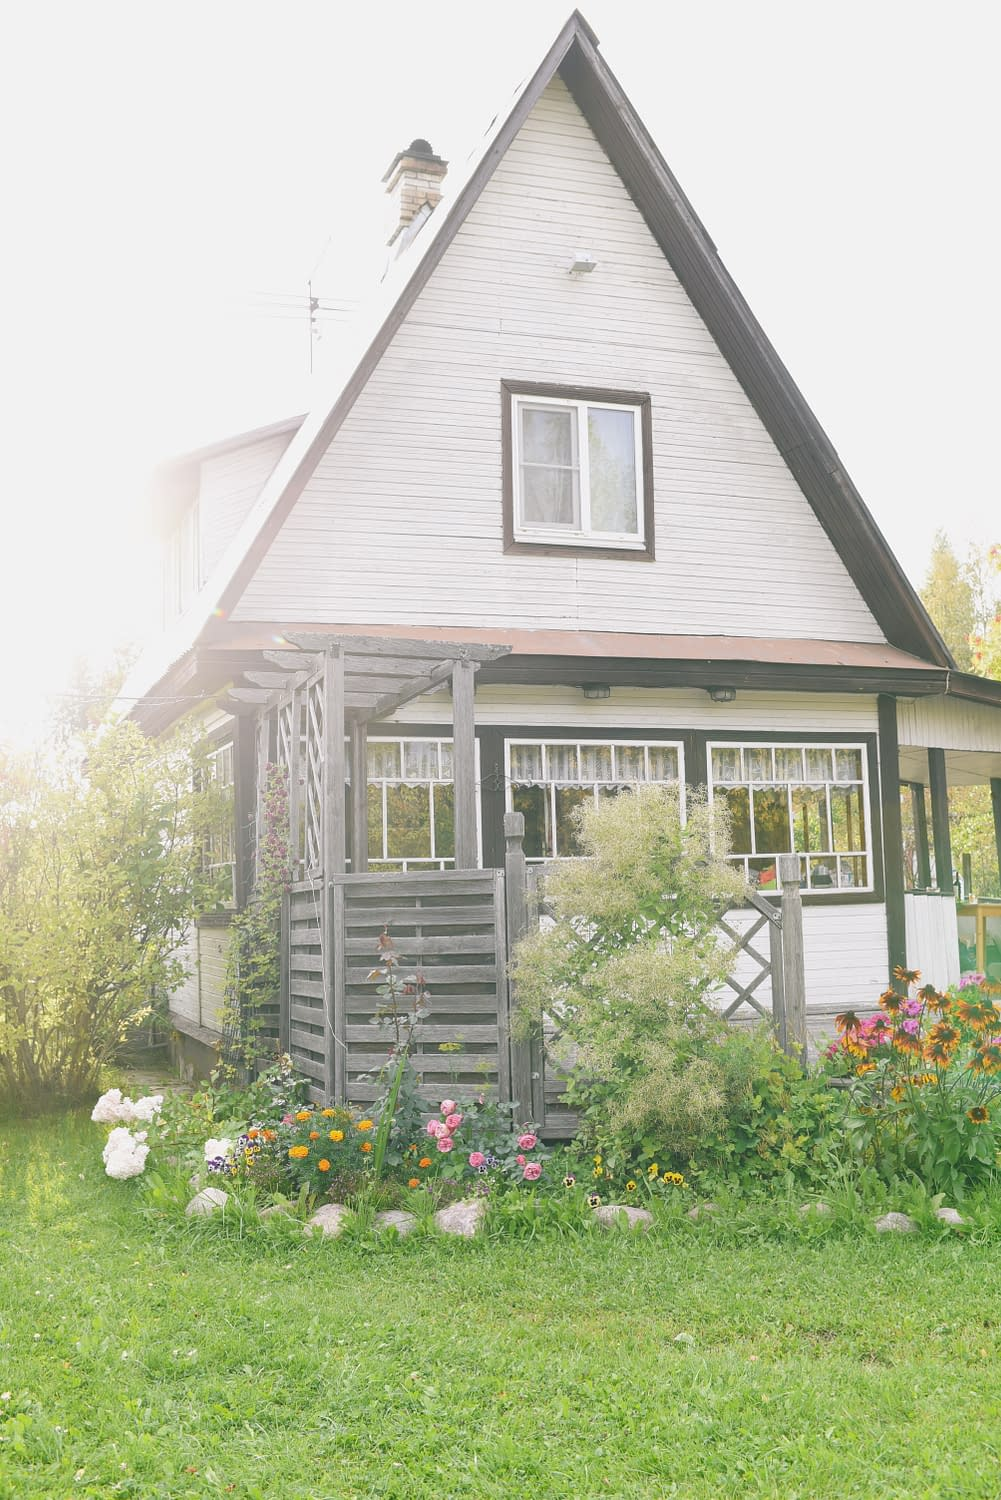 white tiny house, surrounded by a garden